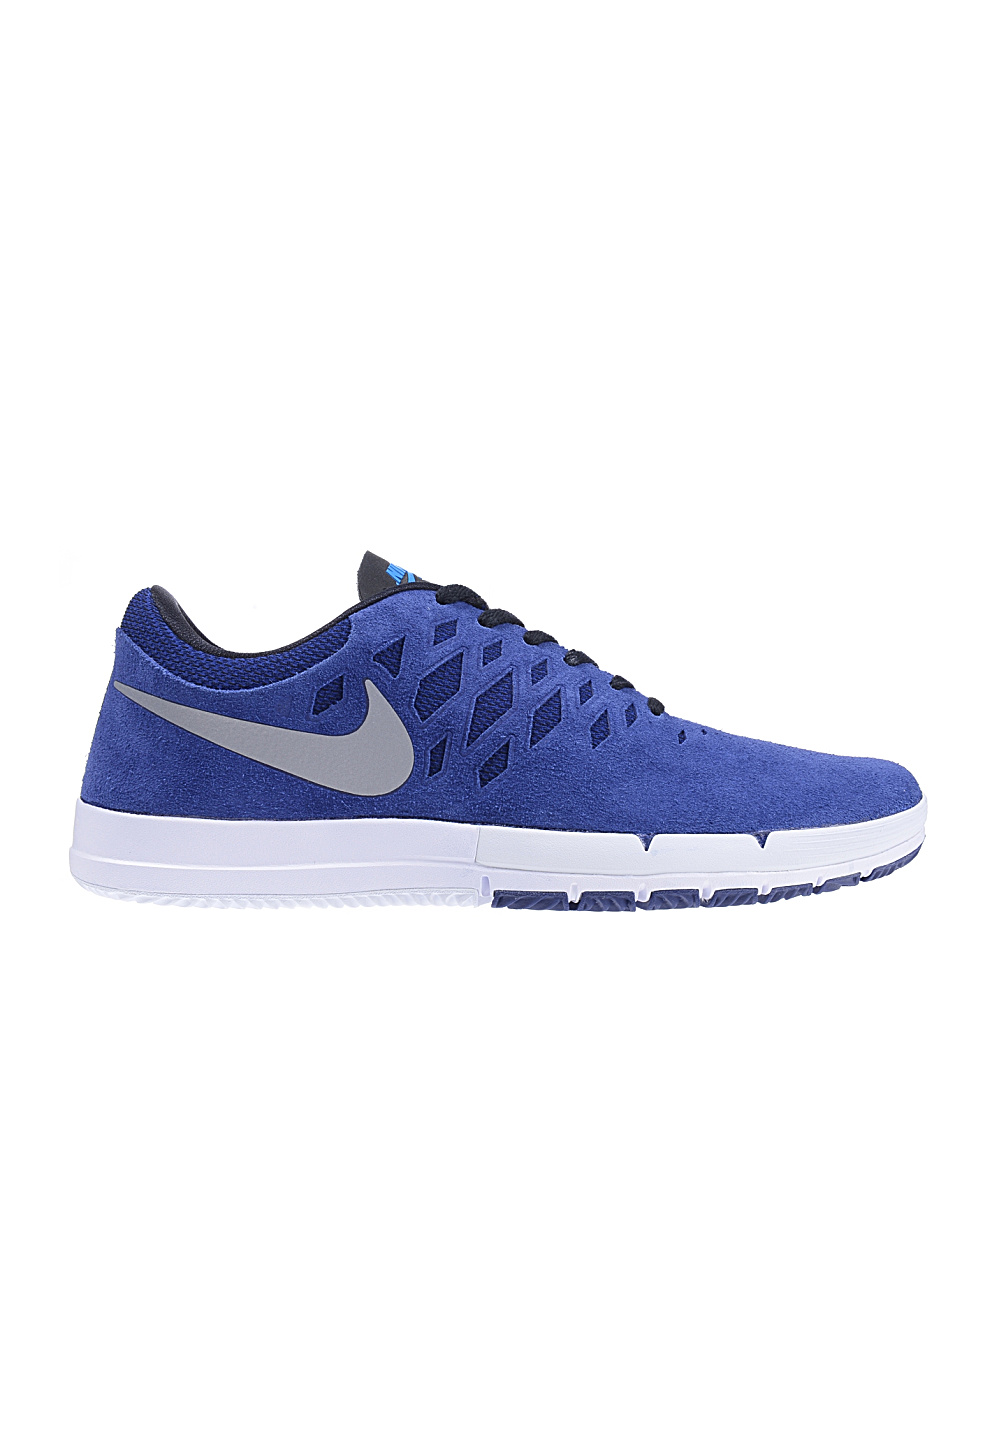 nike sb free sb baskets pour homme bleu planet sports. Black Bedroom Furniture Sets. Home Design Ideas